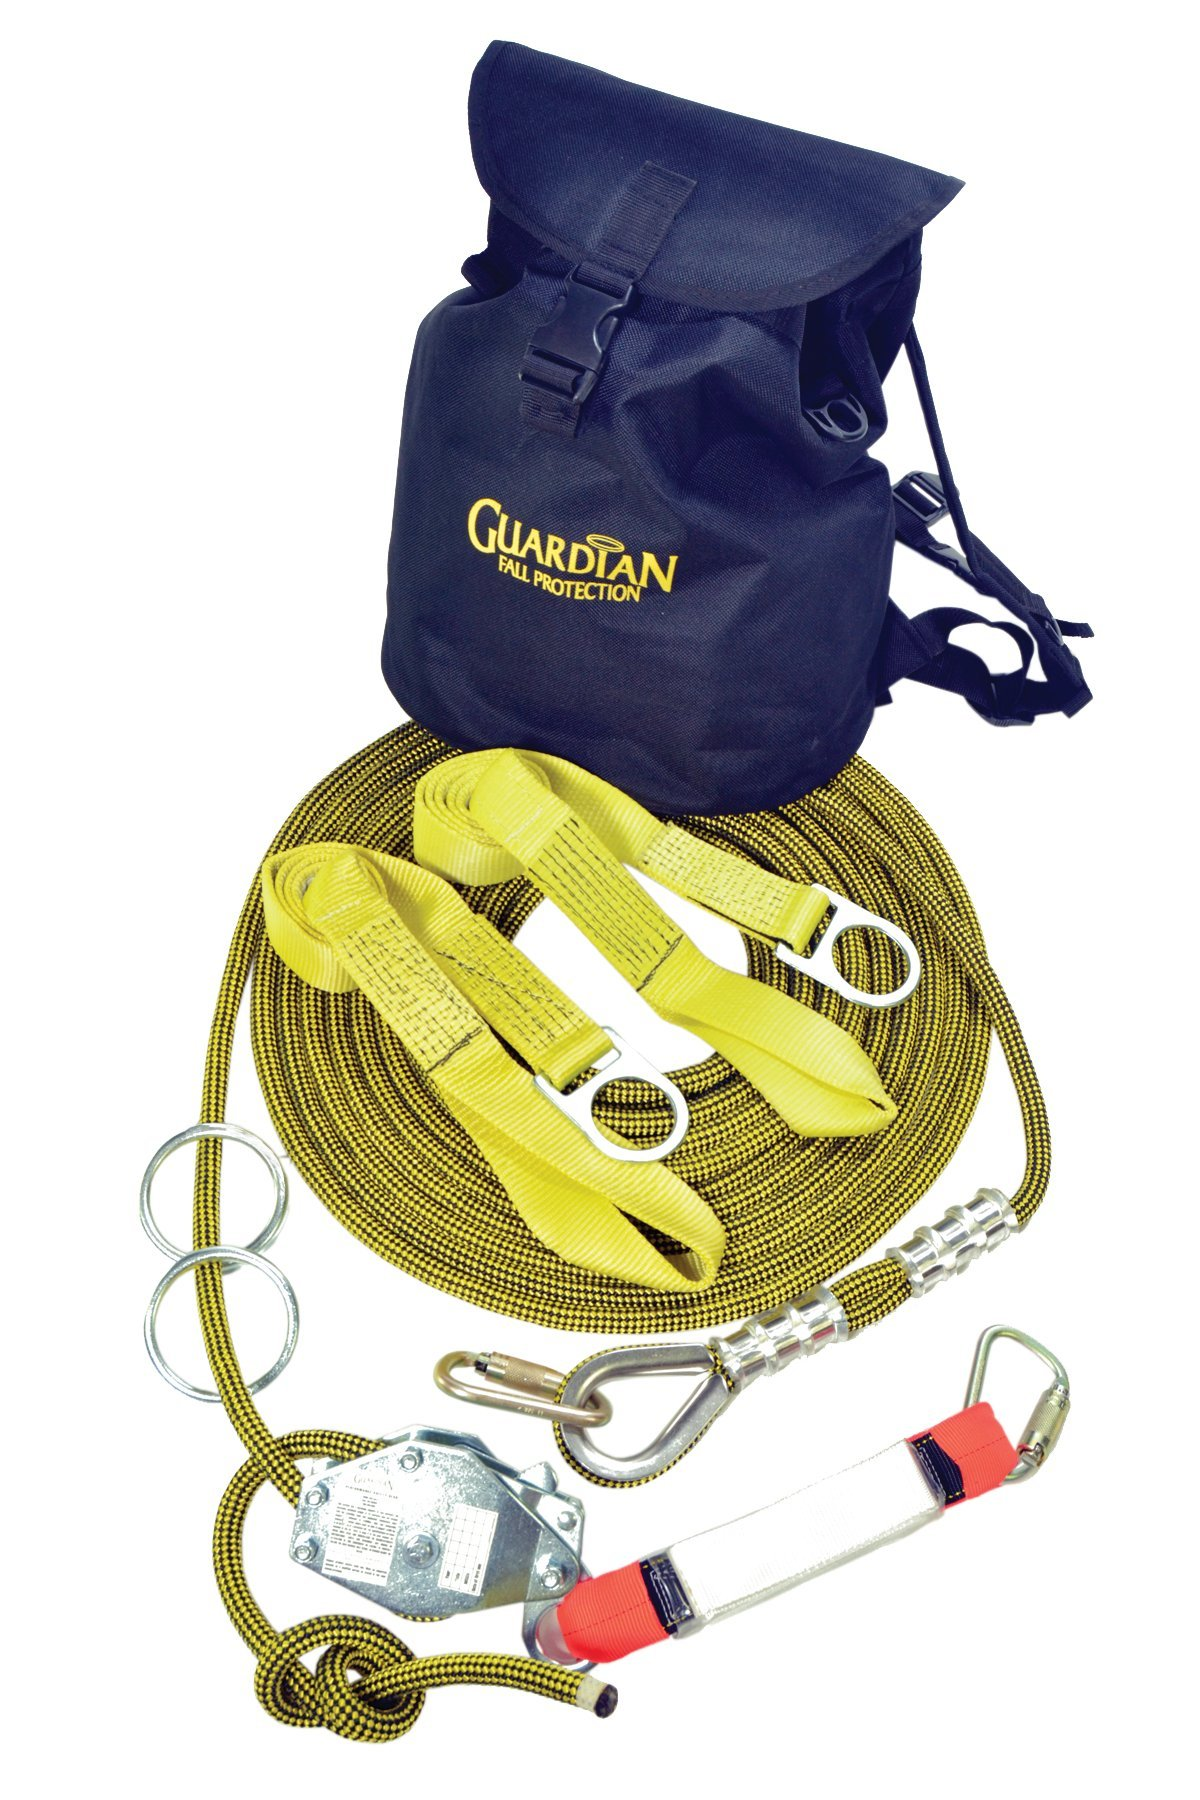 Guardian Fall Protection 04640 Kernmantle Horizontal Lifeline System with Tensioner, 2 O-Rings, 2 Web Slings 2 Steel Carabineers and SOS-Bag, 100-Foot by Guardian Fall Protection